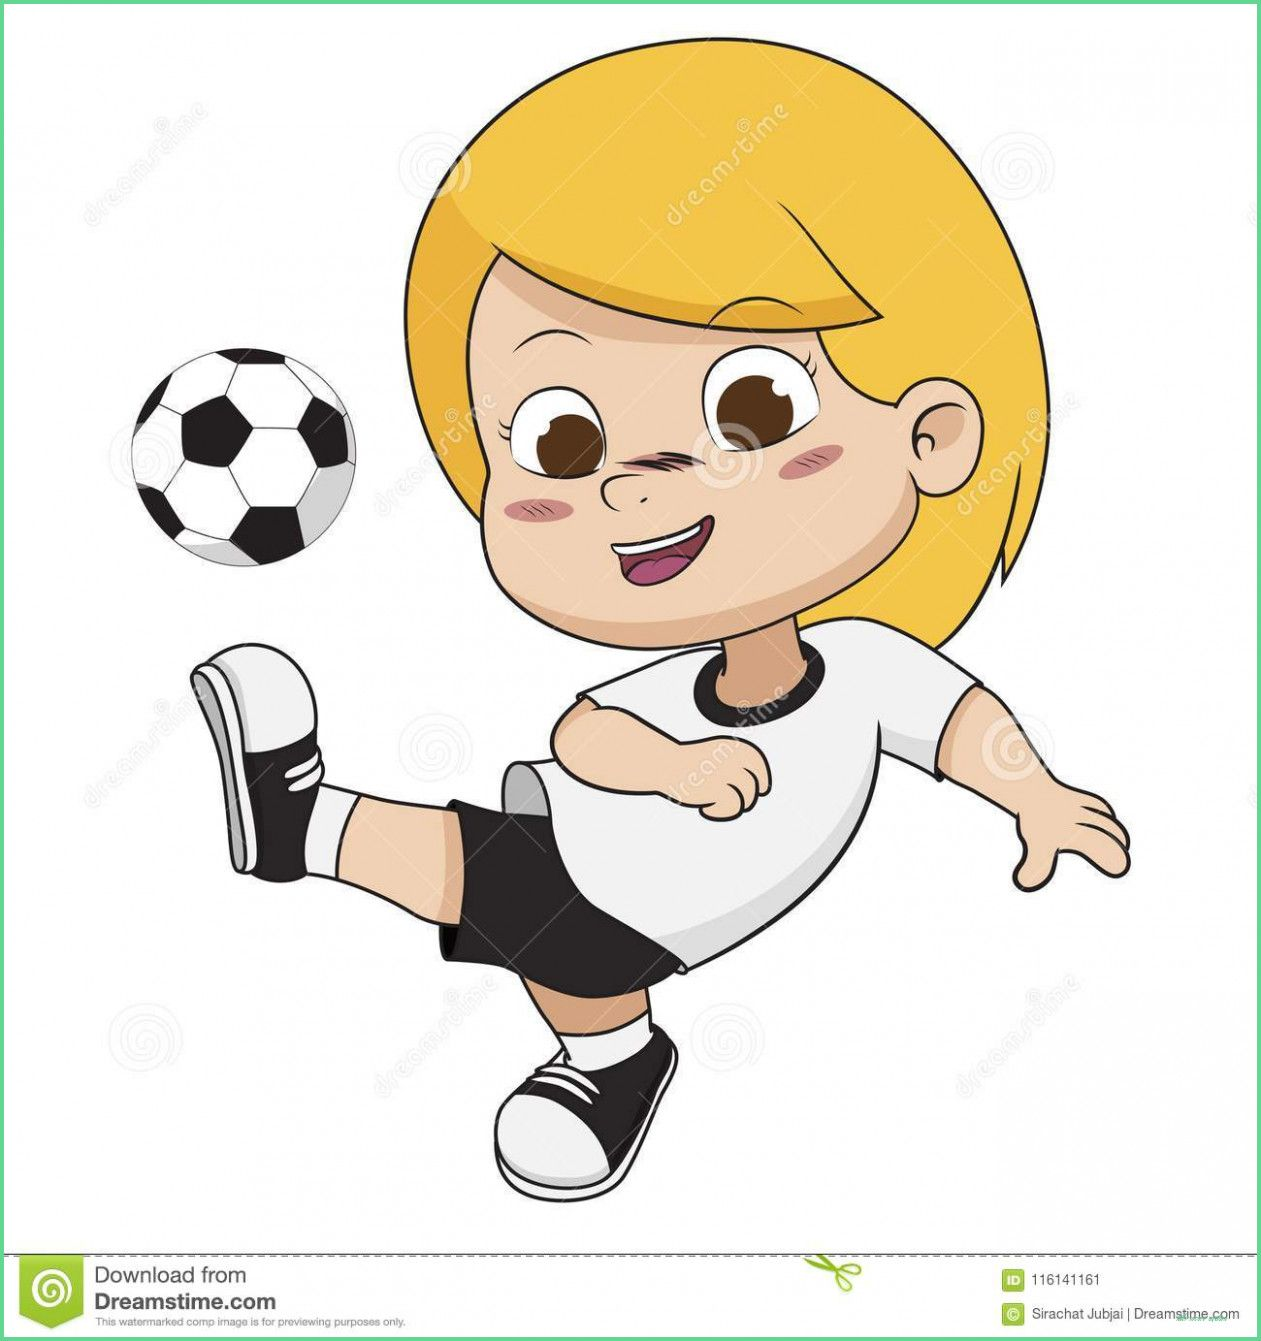 Seven Common Misconceptions About Kids Soccer Cartoon Kids Soccer Cartoon Https Soccerdrawings Com Seven Common Mis In 2020 Soccer Drawing Kids Soccer Cartoon Kids